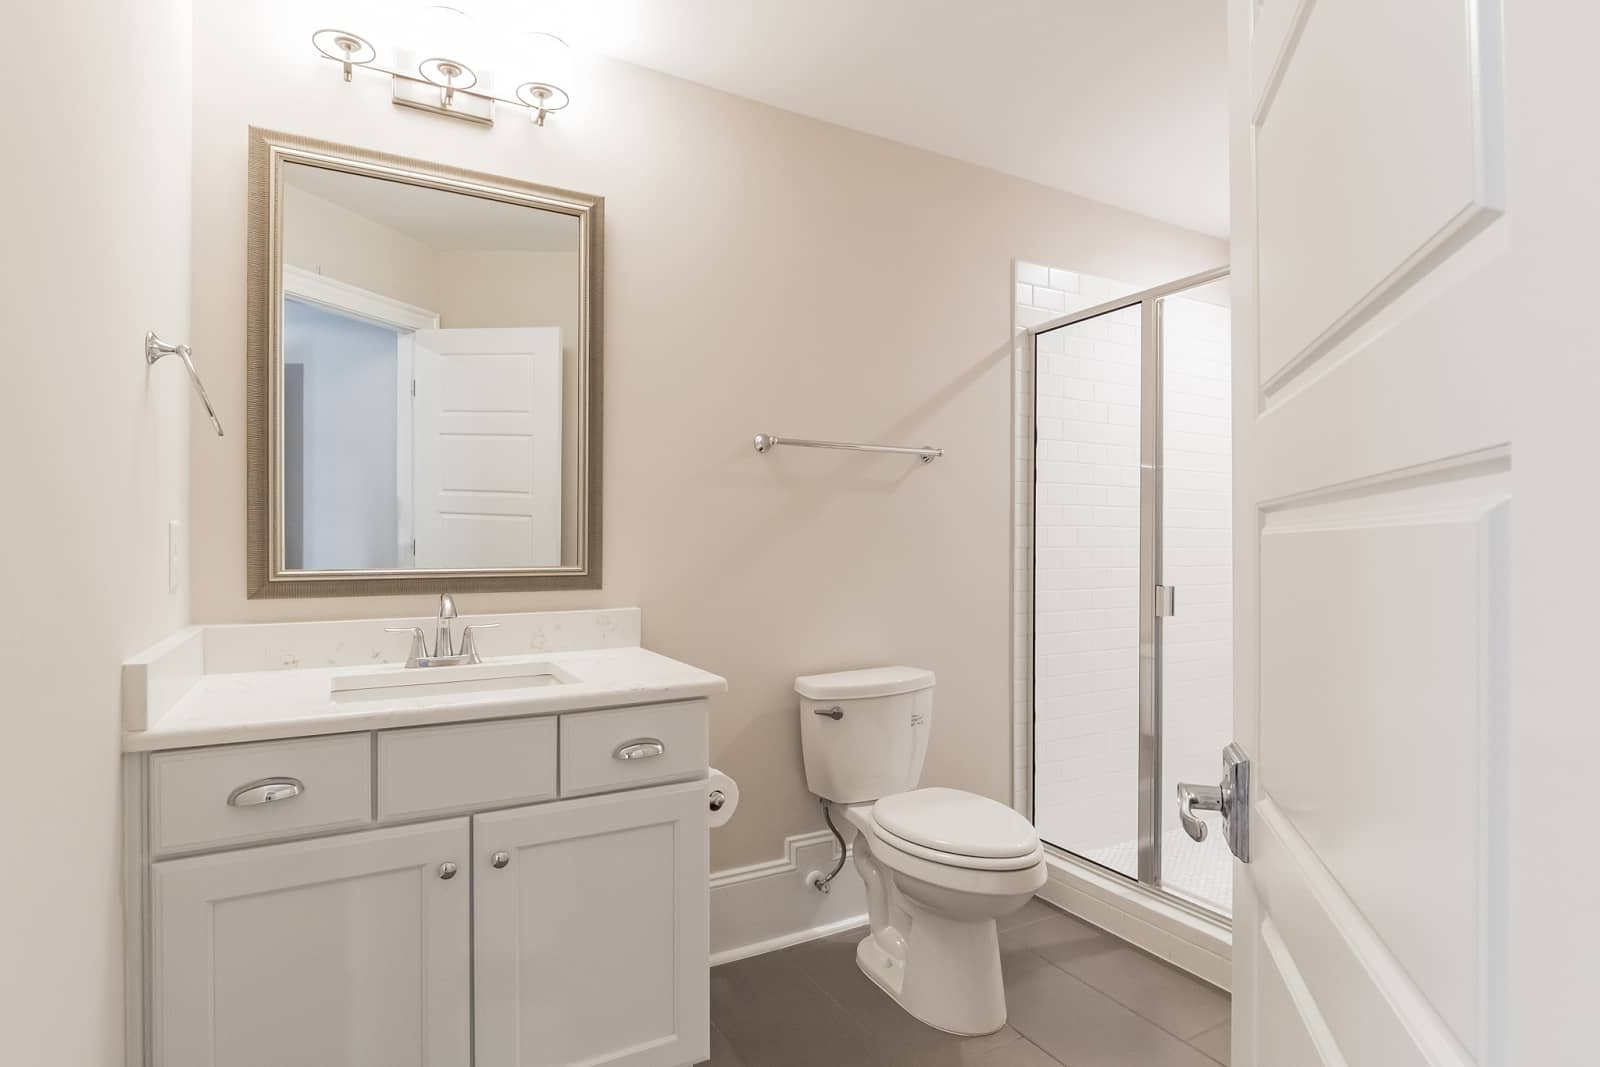 Real Estate Photography in Apex - NC - USA - Bathroom View